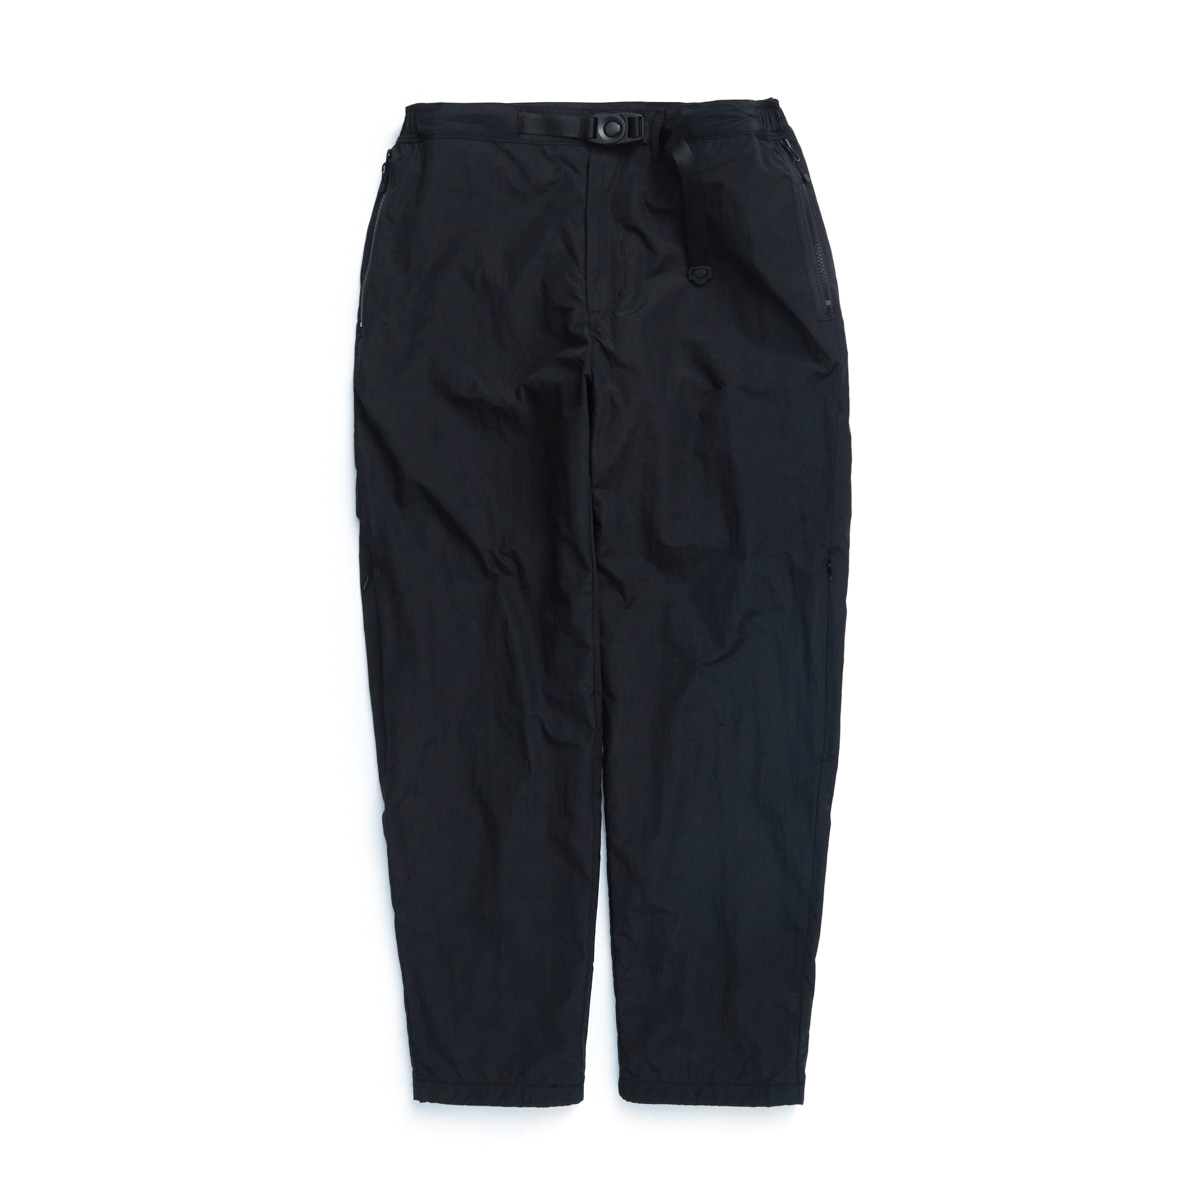 언어펙티드 FUNCTIONAL PANTS (Black)